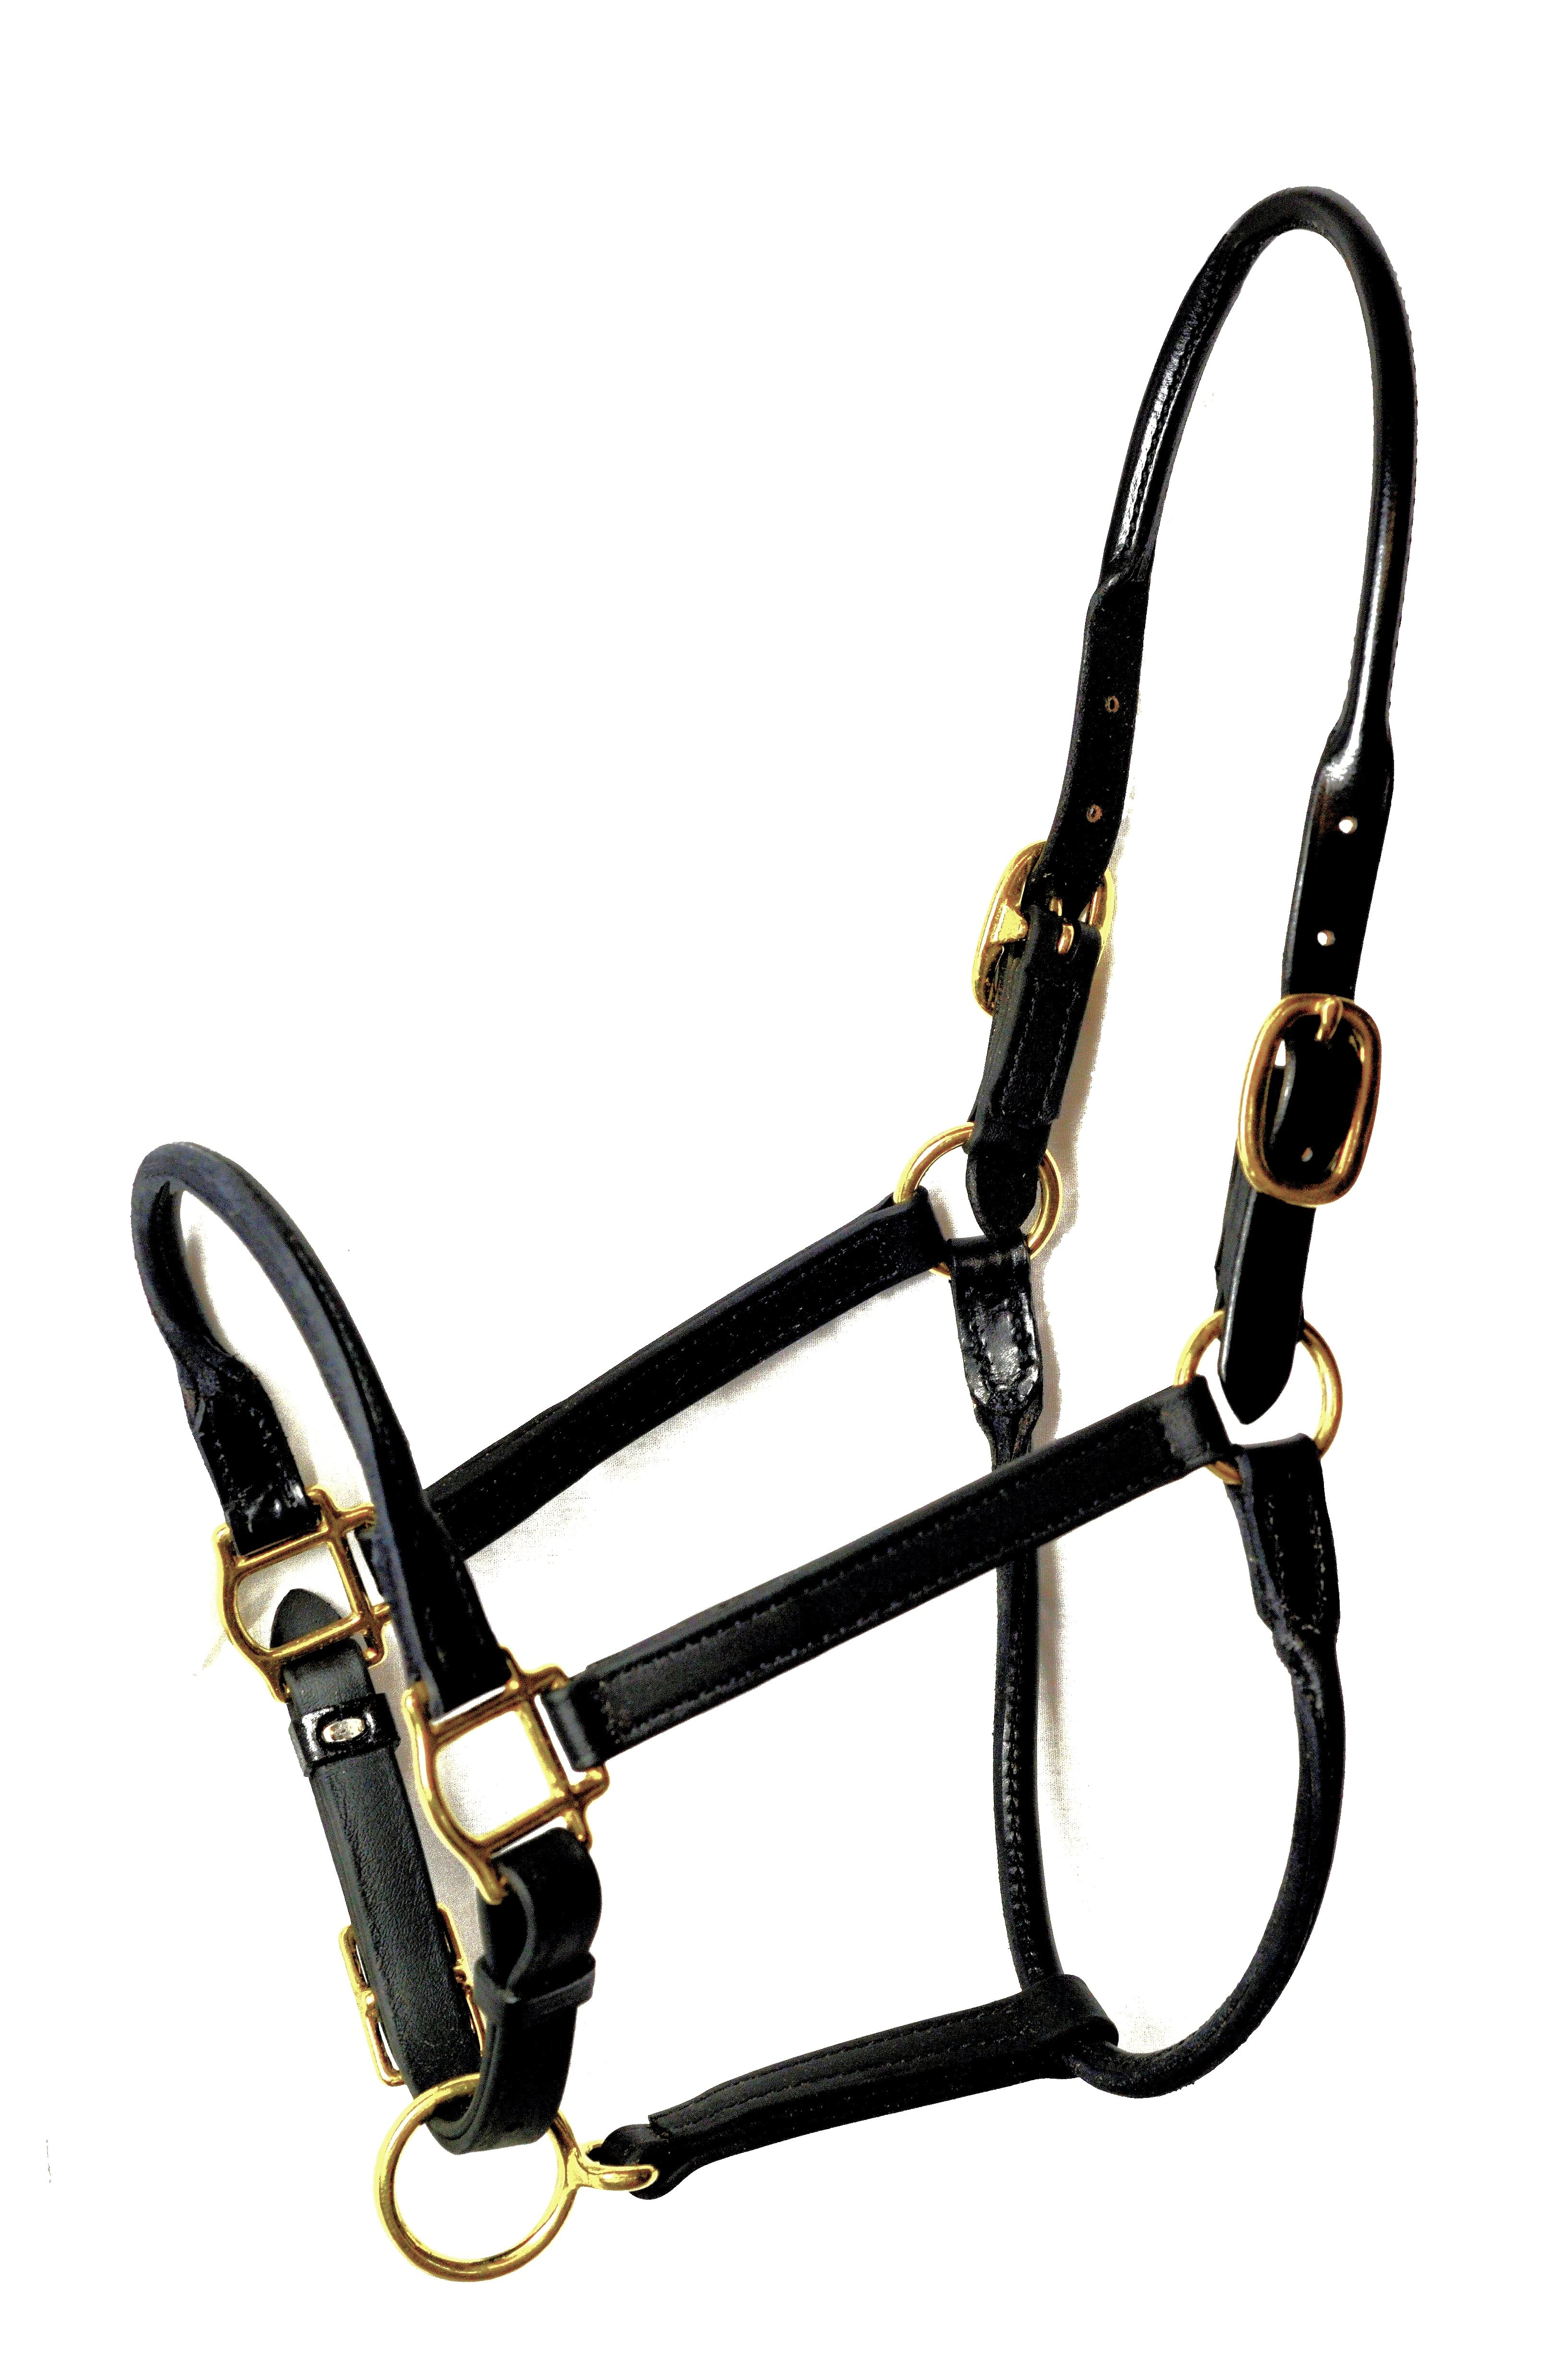 Rolled Nose, Throat & Crown Stable Halter for Arabians